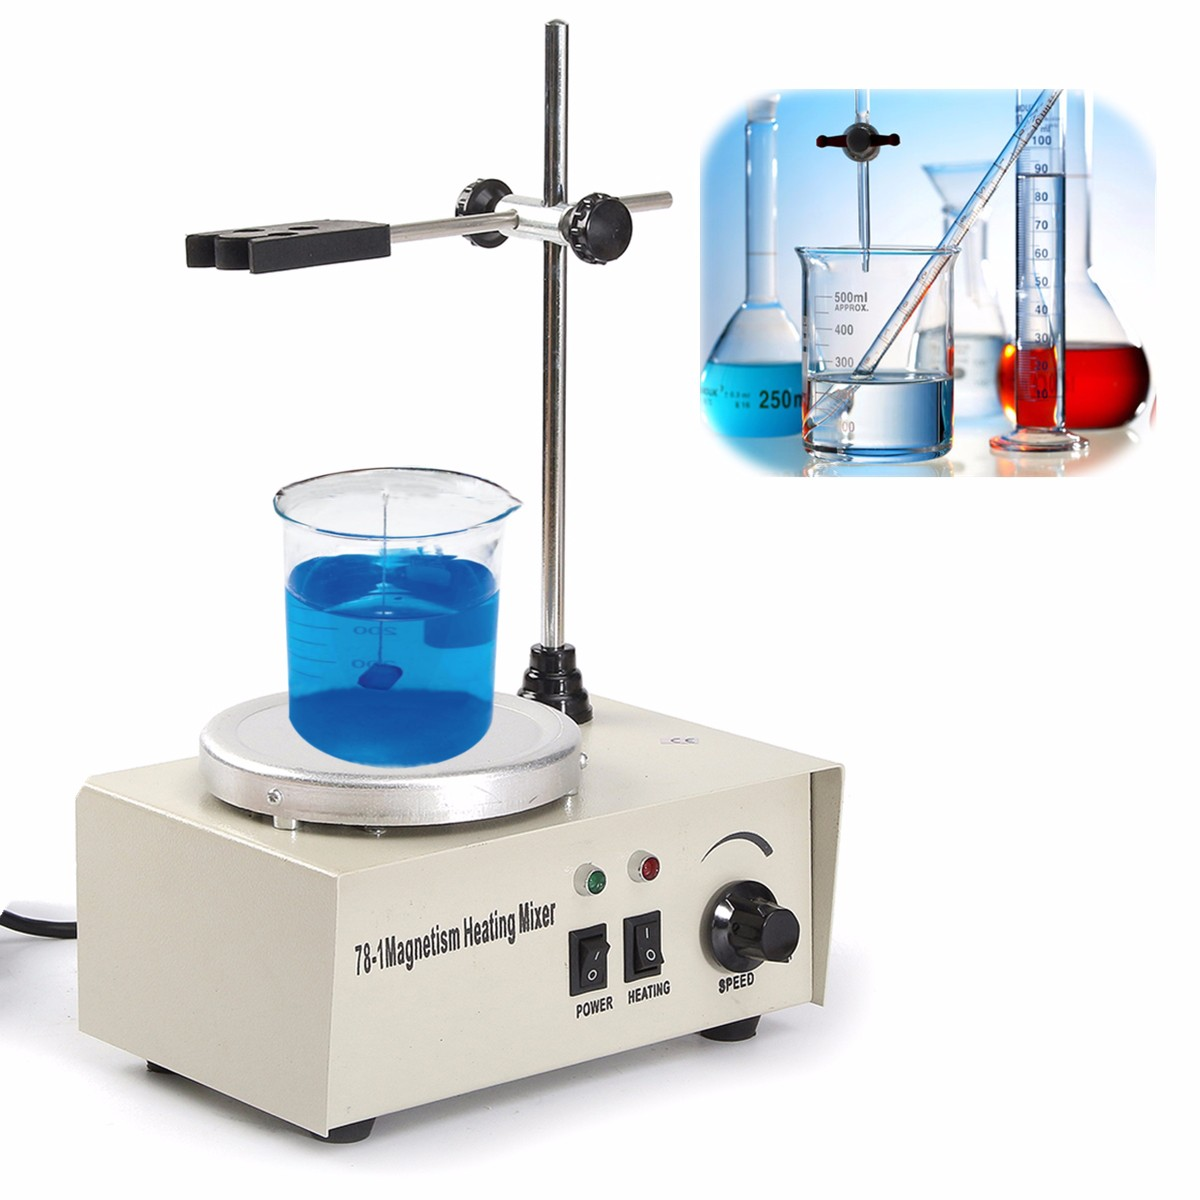 KiCute Laboratory Chemistry Magnetic Stirrer Magnetic Stirrer Lab Magnetic Mixer Stirrers Apparatus 220V 50HZ Lab Supplies kicute new laboratory chemistry magnetic stirrer magnetic stirrer home laboratory magnetic mixer stirrers apparatus ac100 240v